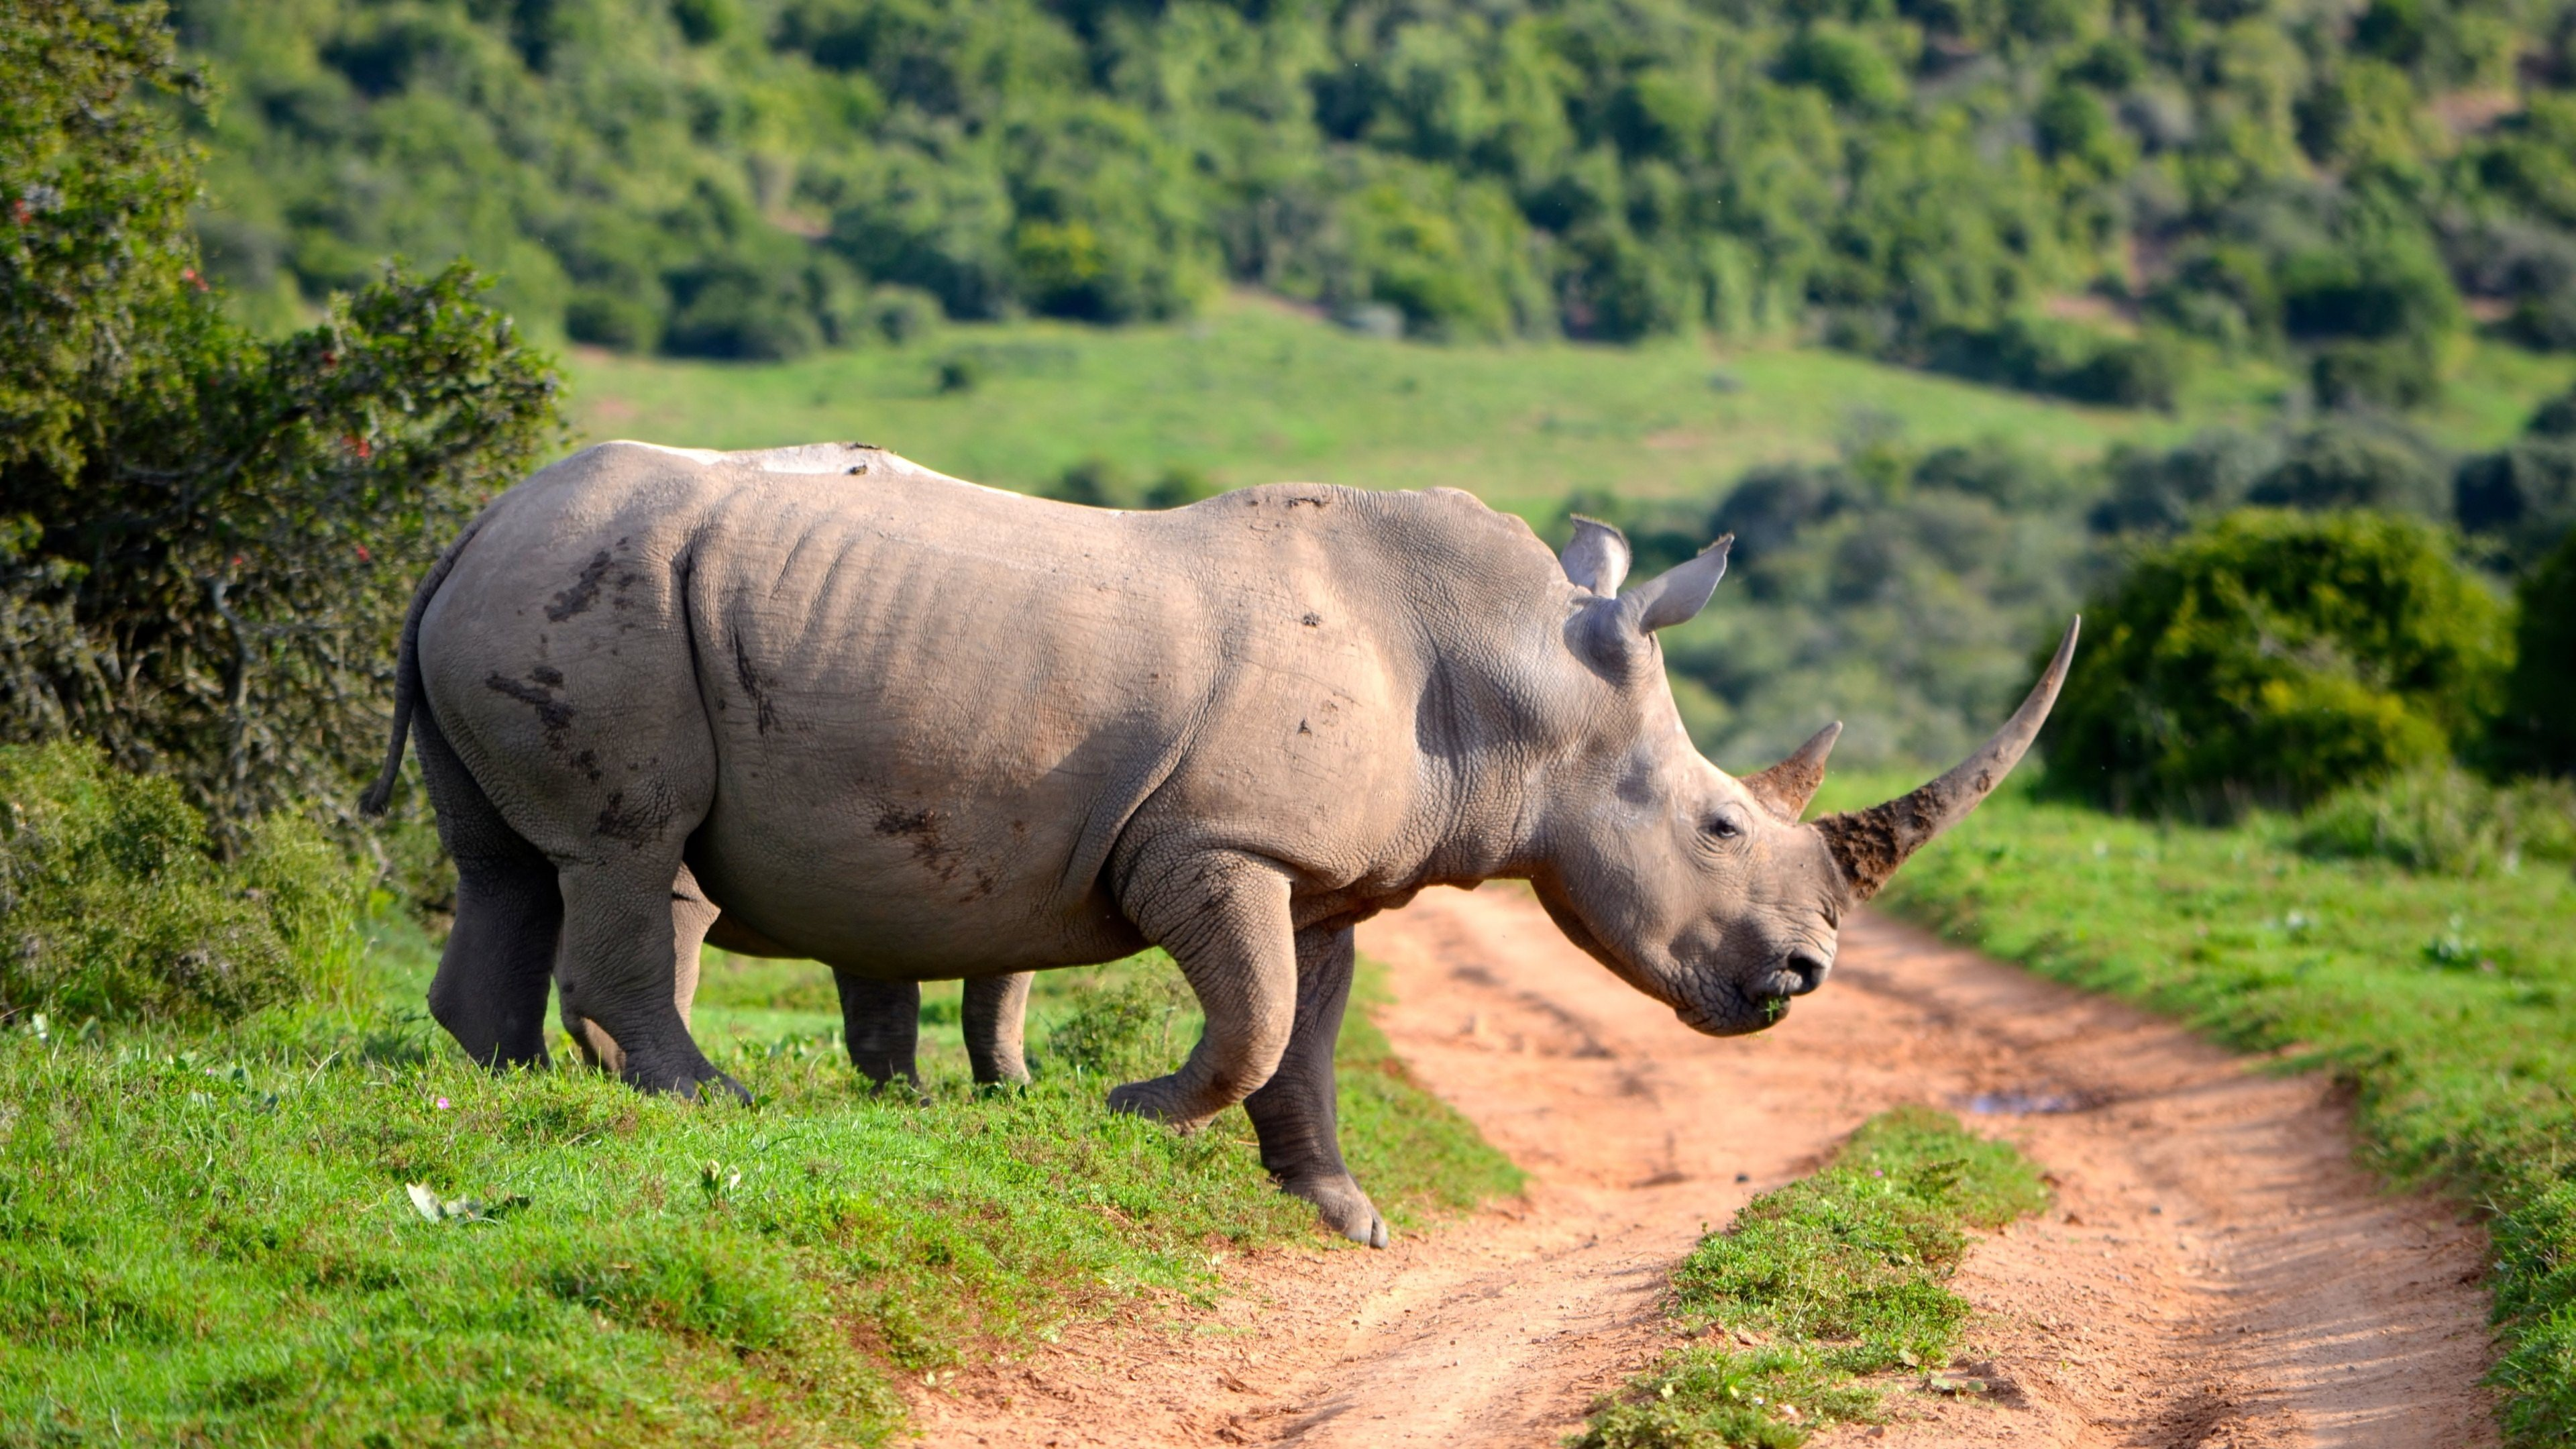 Download uhd 4k Rhino PC background ID:20084 for free